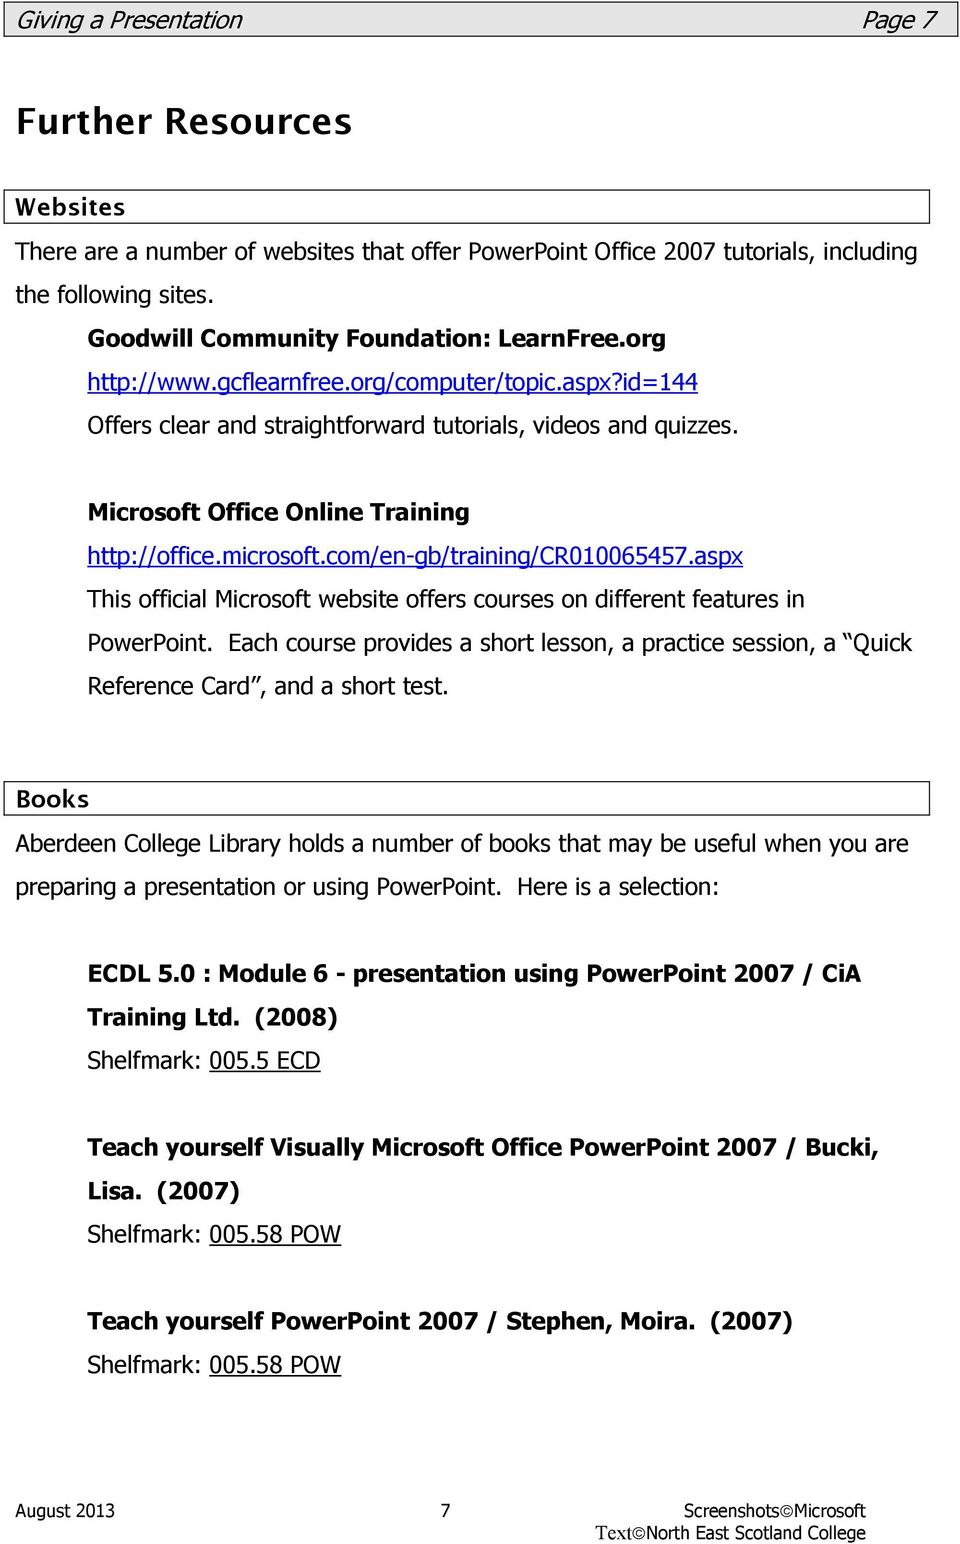 Microsoft Office Online Training http://office.microsoft.com/en-gb/training/cr010065457.aspx This official Microsoft website offers courses on different features in PowerPoint.